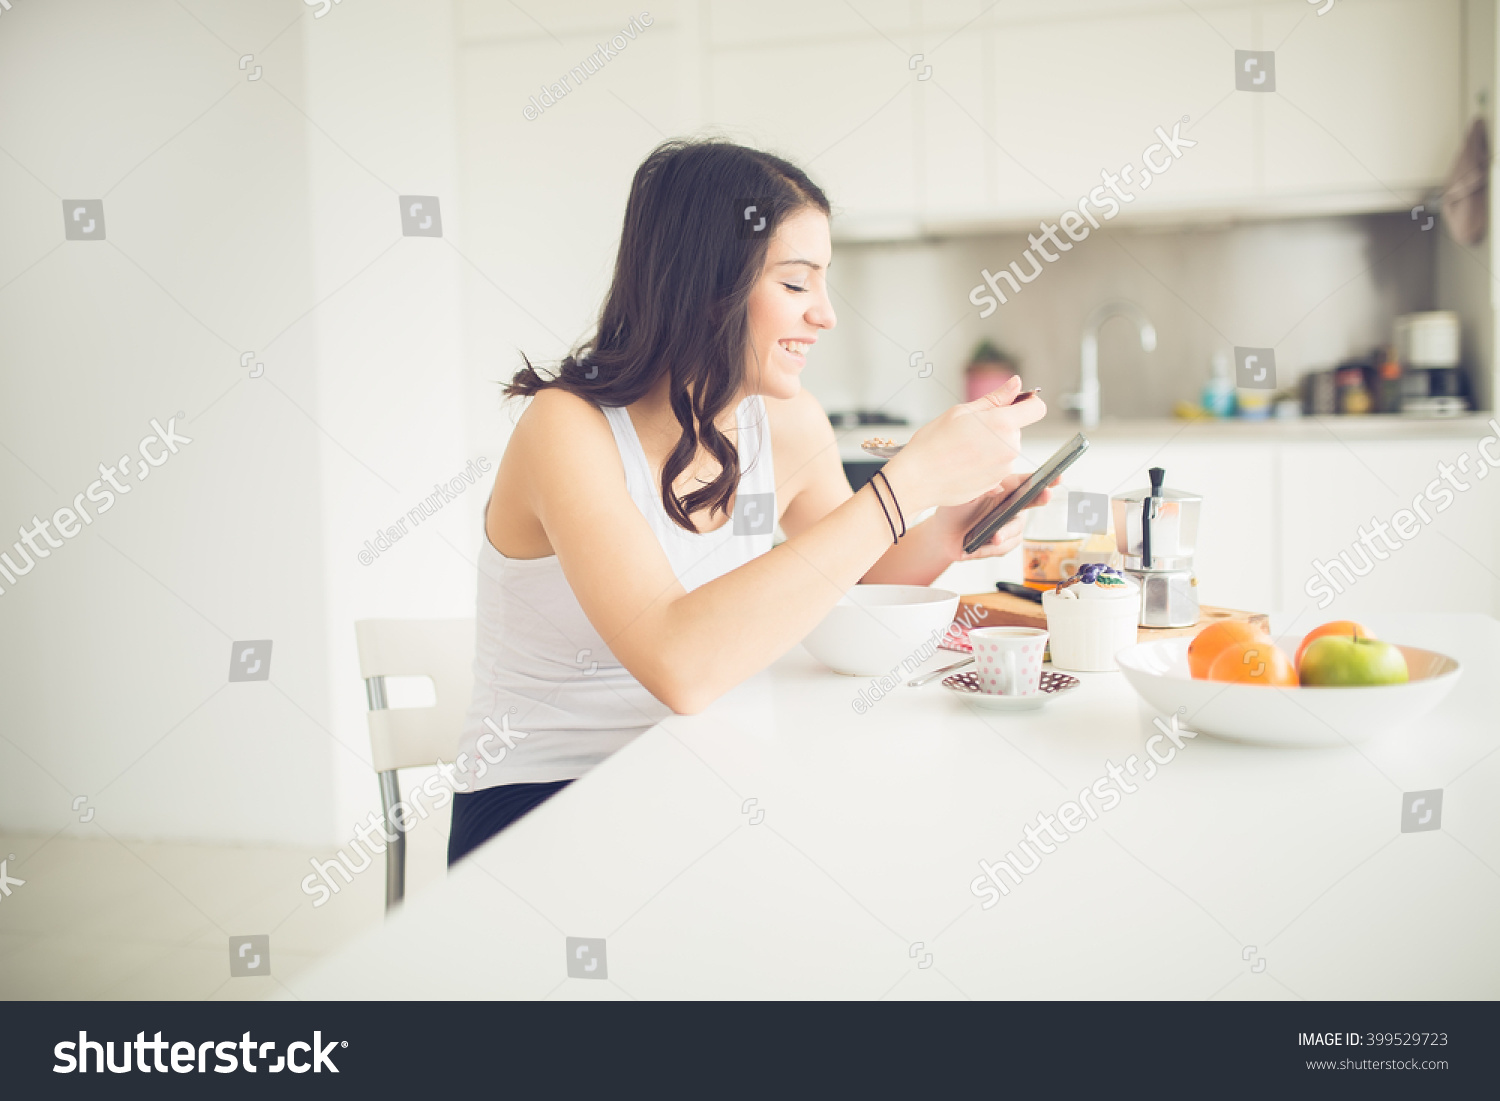 young smiling woman eating healthy breakfast stock photo 399529723 shutterstock. Black Bedroom Furniture Sets. Home Design Ideas